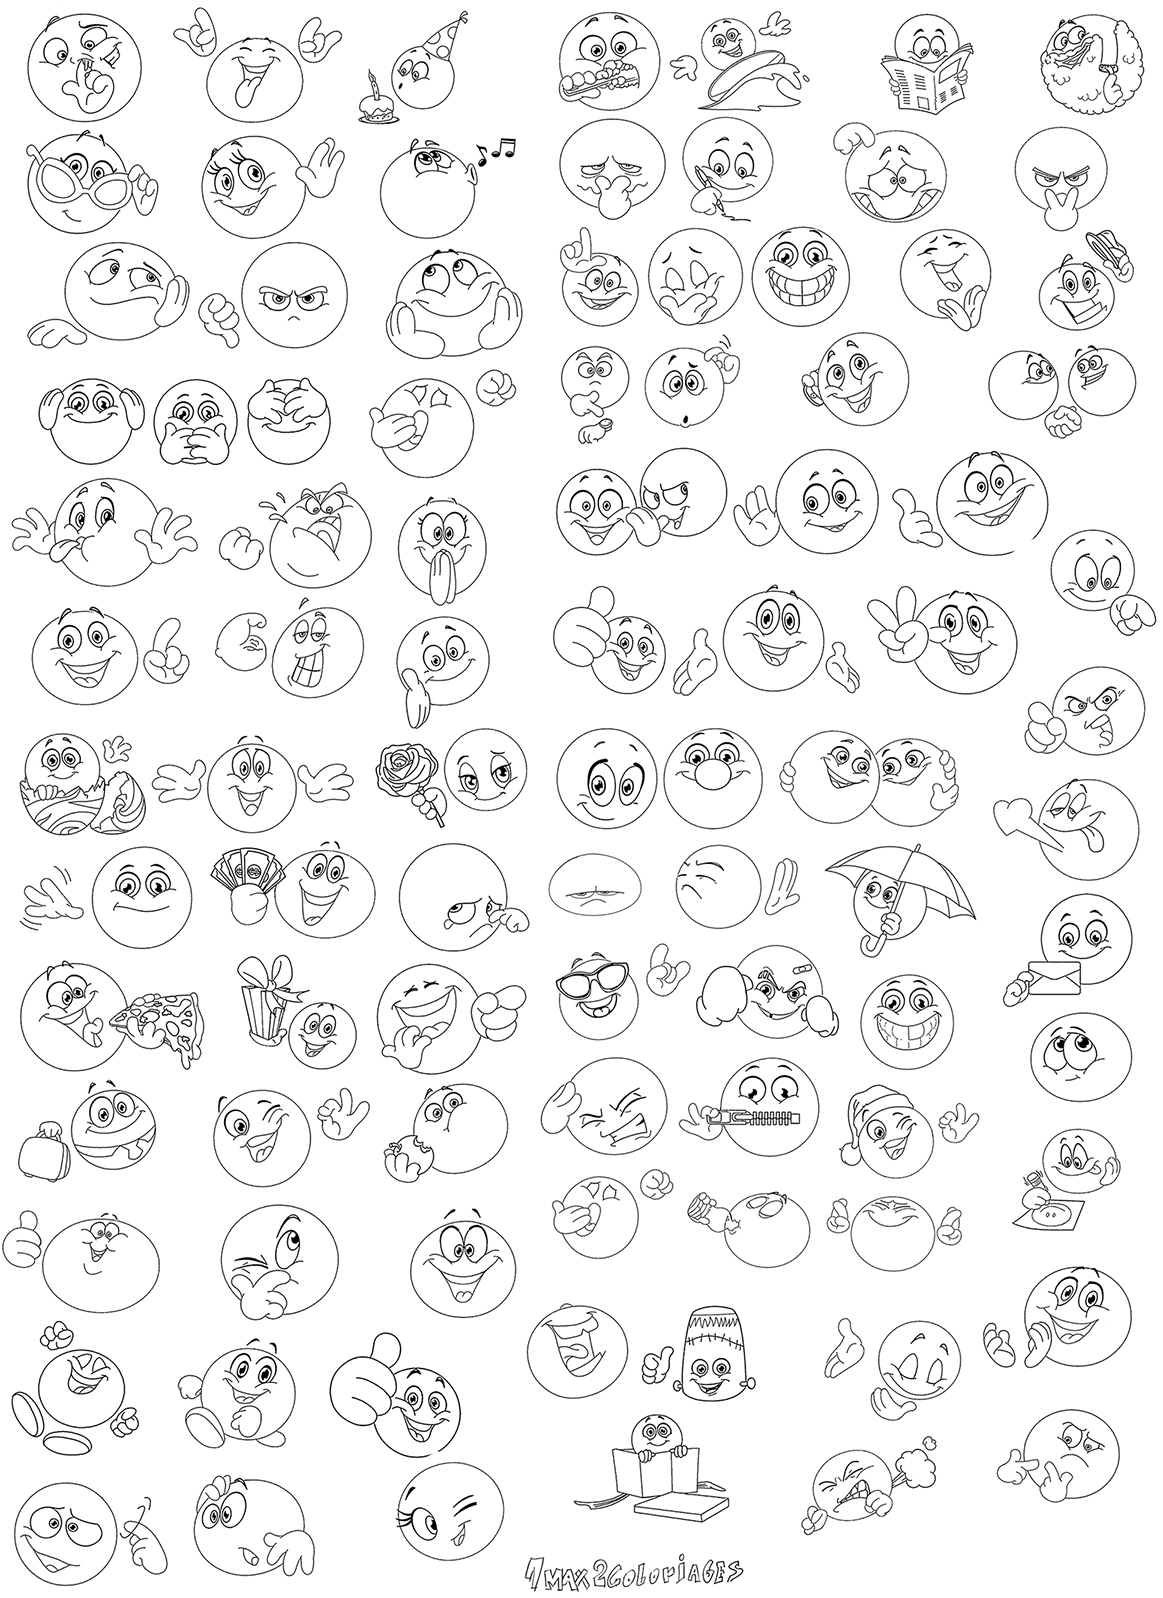 Pin coloriage smiley a imprimer gratuit sunn image forum - Coloriage de smiley ...